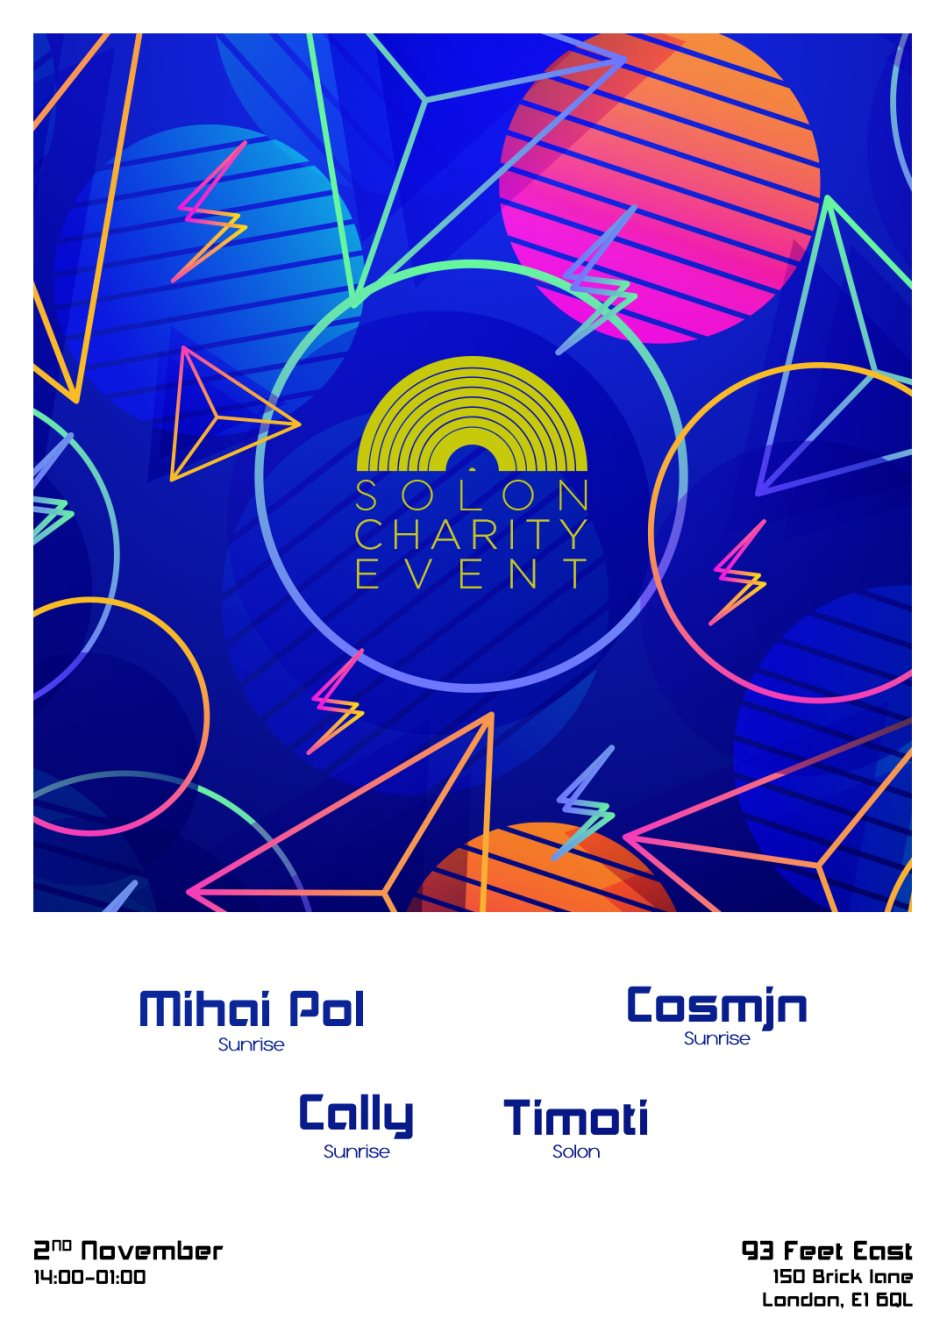 Solon Charity Event with Mihai Pol, Cosmjn, caLLy and Timoti - Flyer front